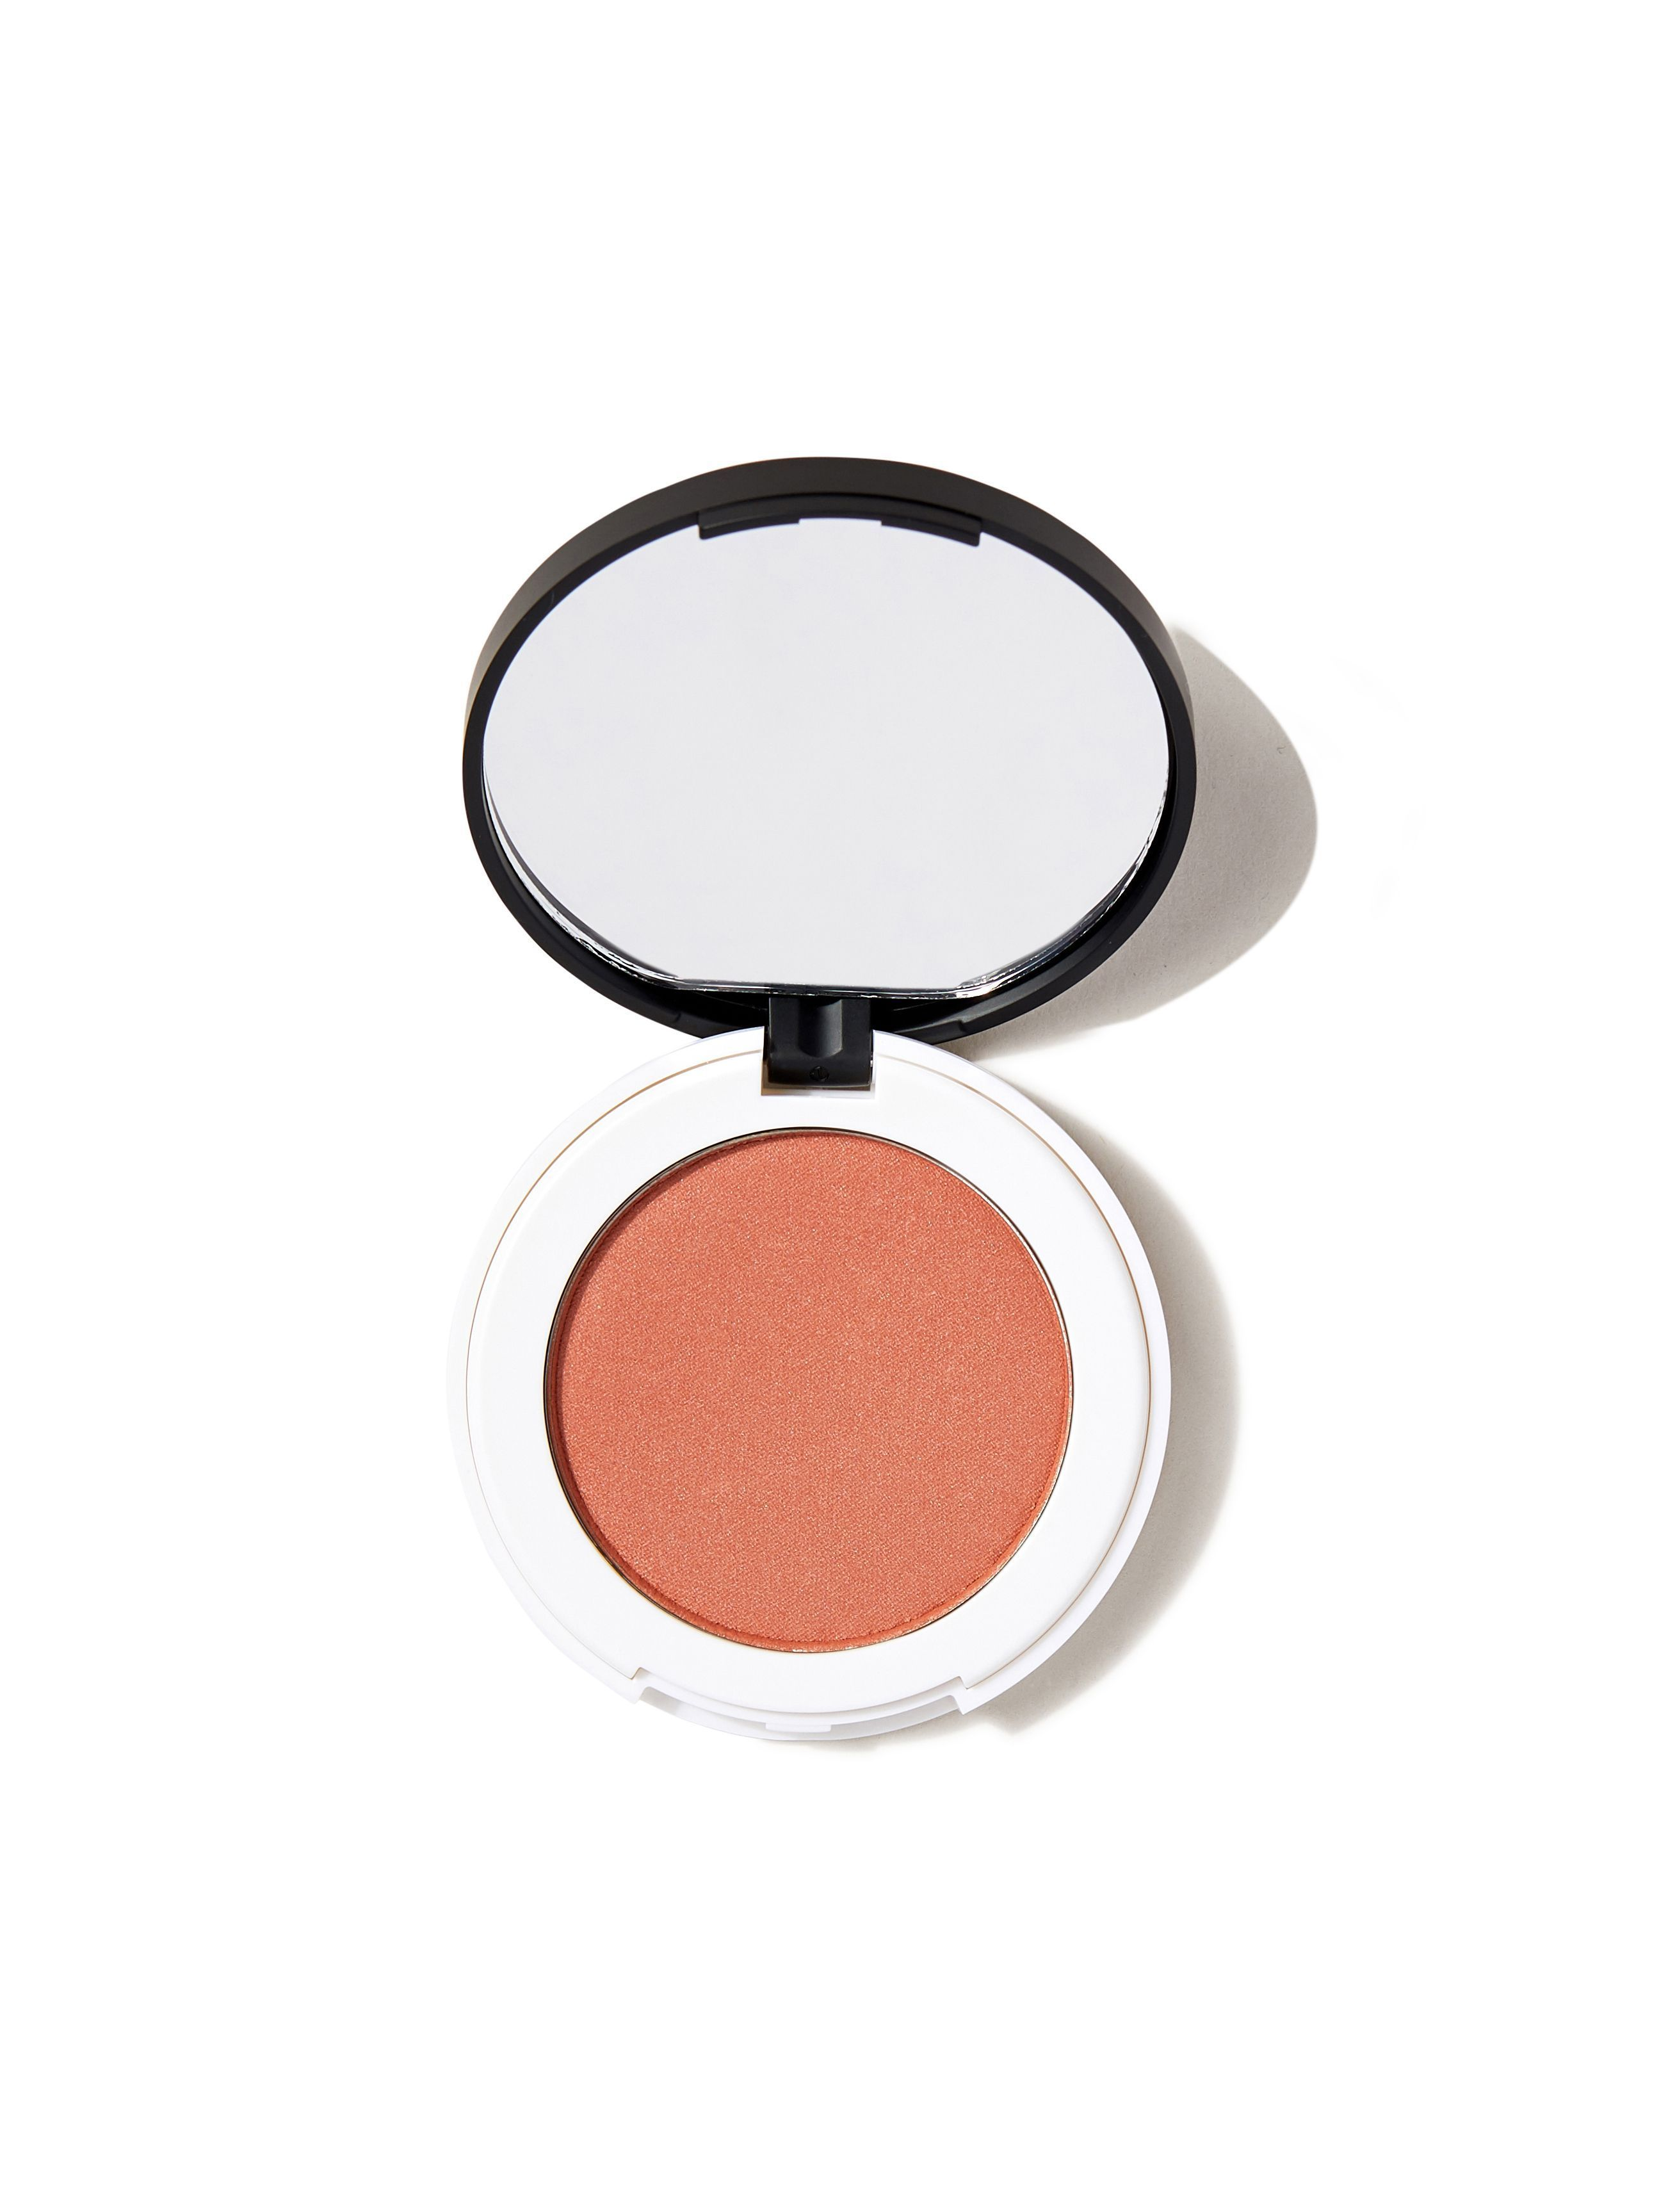 Lily Lolo Pressed Blush - Leife S A Peach #lilylolo Lily Lolo Pressed Blush - Just Peachy #lilylolo Lily Lolo Pressed Blush - Leife S A Peach #lilylolo Lily Lolo Pressed Blush - Just Peachy #lilylolo